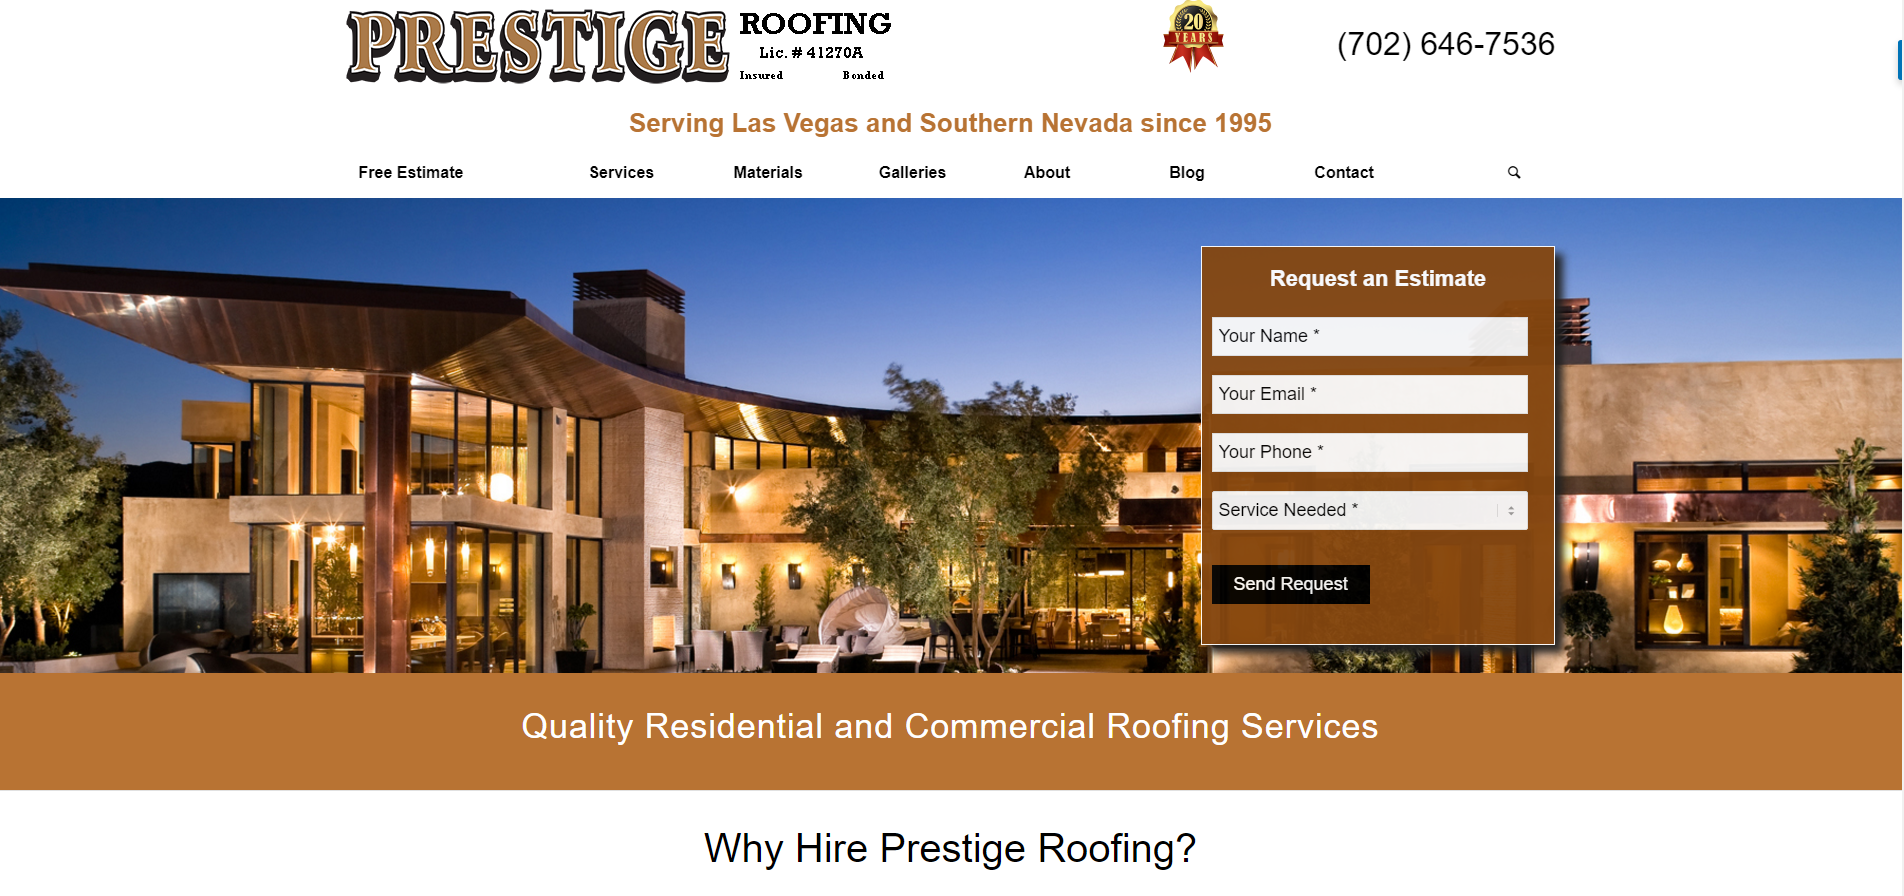 sc 1 st  Horizon Web Marketing & Prestige Roofing - Horizon Web Marketing memphite.com